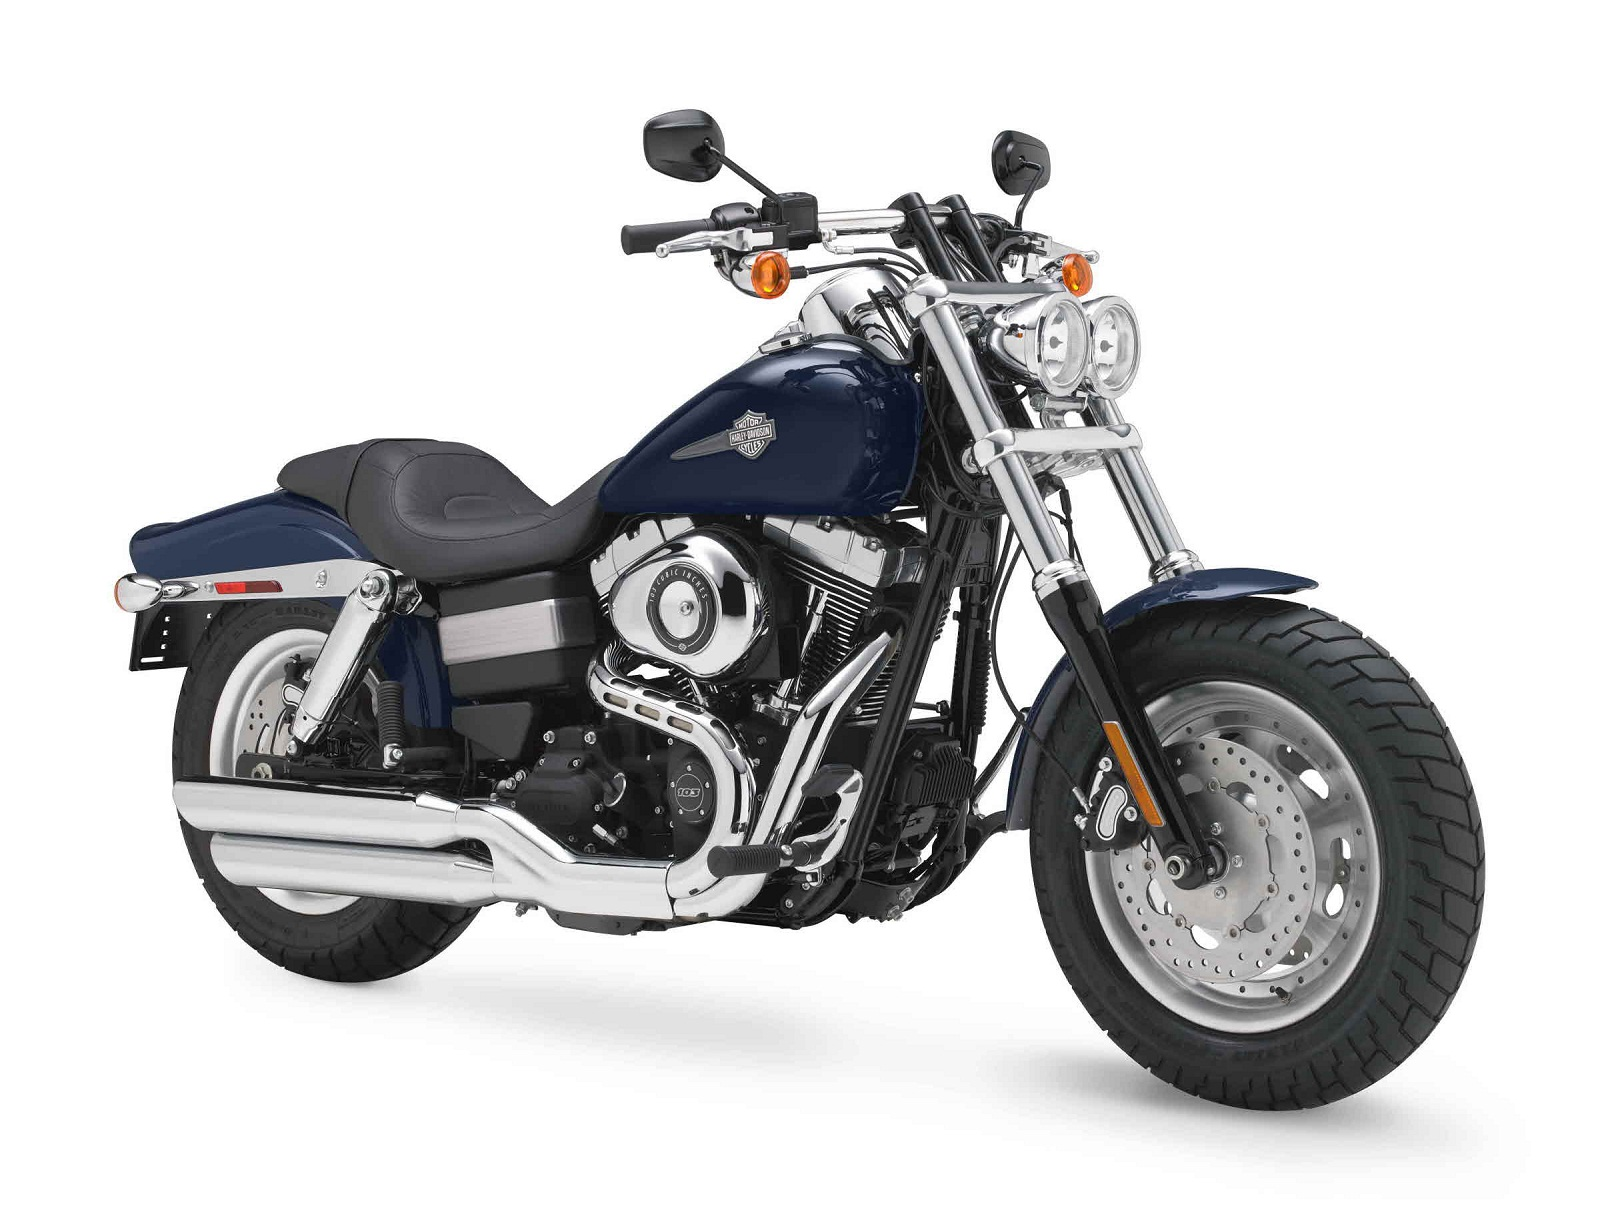 2012 Harley-Davidson Dyna FXDF Fat Bob | Top Sd on harley fuel pump diagram, harley throttle by wire diagram, harley clutch diagram, harley charging system diagram, harley generator wiring, harley-davidson softail wiring diagram, headlight wire harness diagram, 2009 heritage softail wiring diagram, harley v-rod, harley night train, relay wiring diagram, harley headlight cover, harley-davidson horn wiring diagram, harley starter, harley wheels, harley transmission, chevy boss plow wiring diagram, harley headlight assembly diagram, harley headlight mounting block, harley sportster headlight,